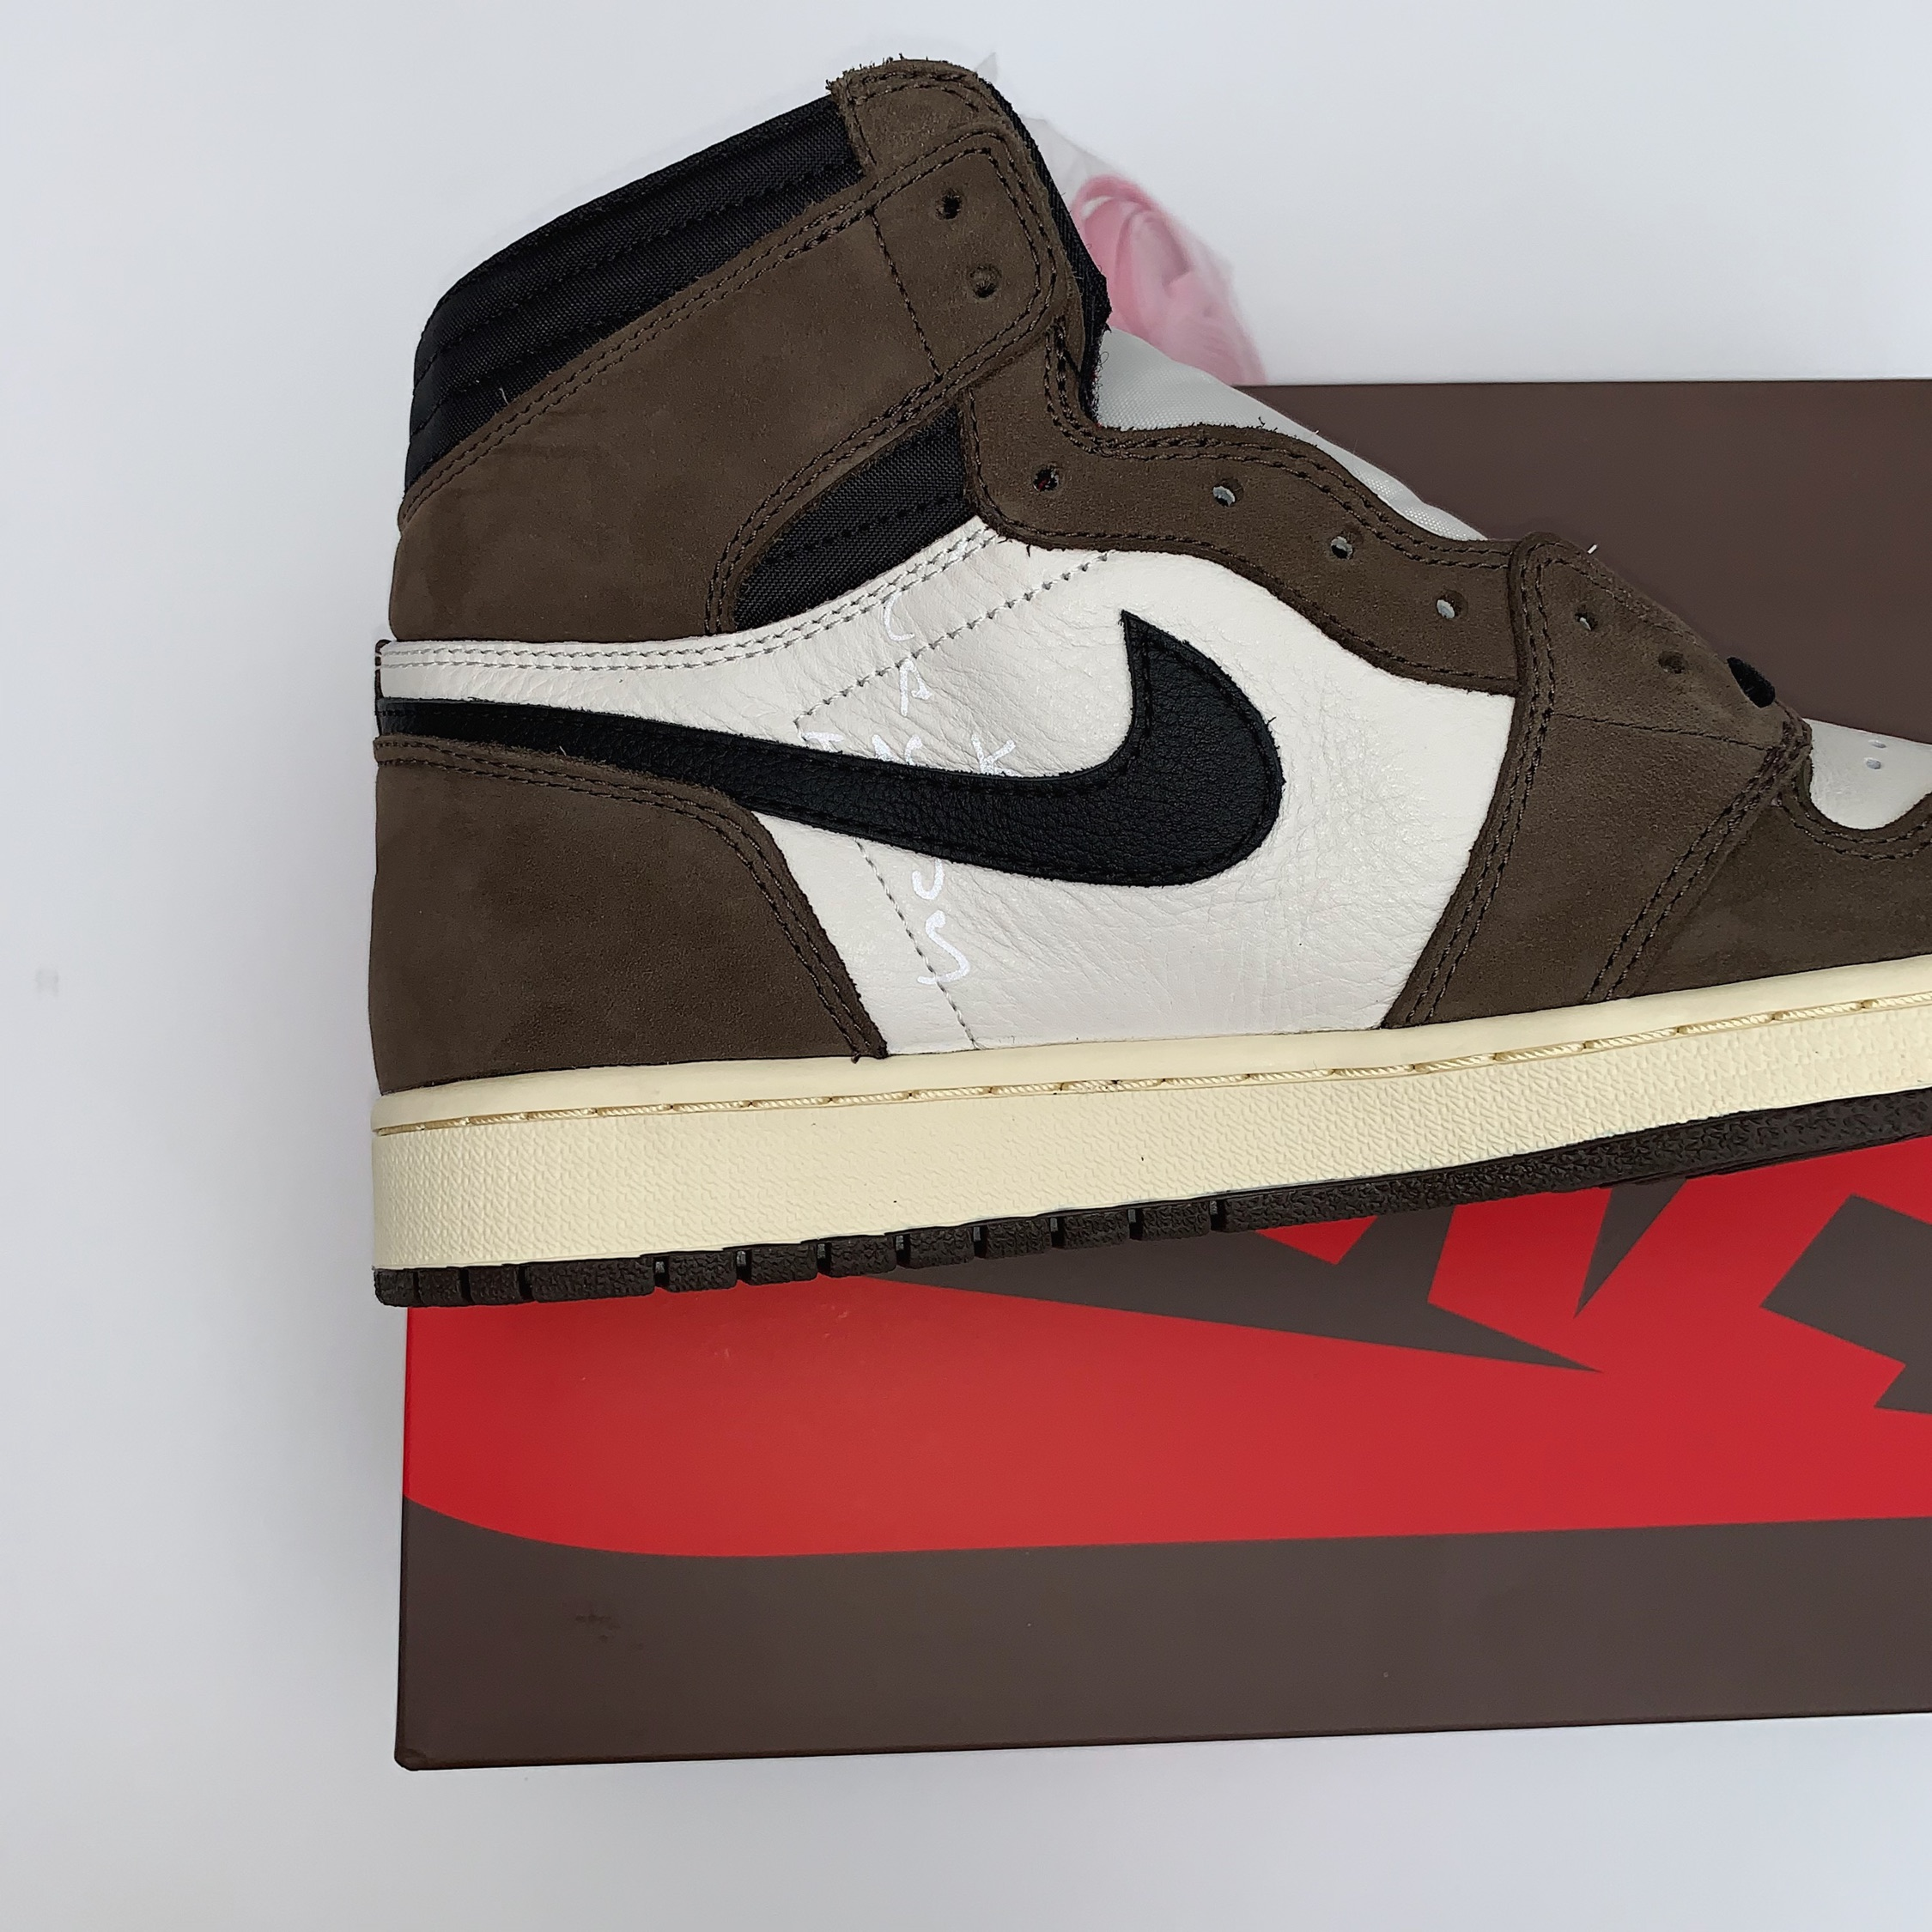 Nike Air Jordan 1 High Travis Scott | 230+ Reviews